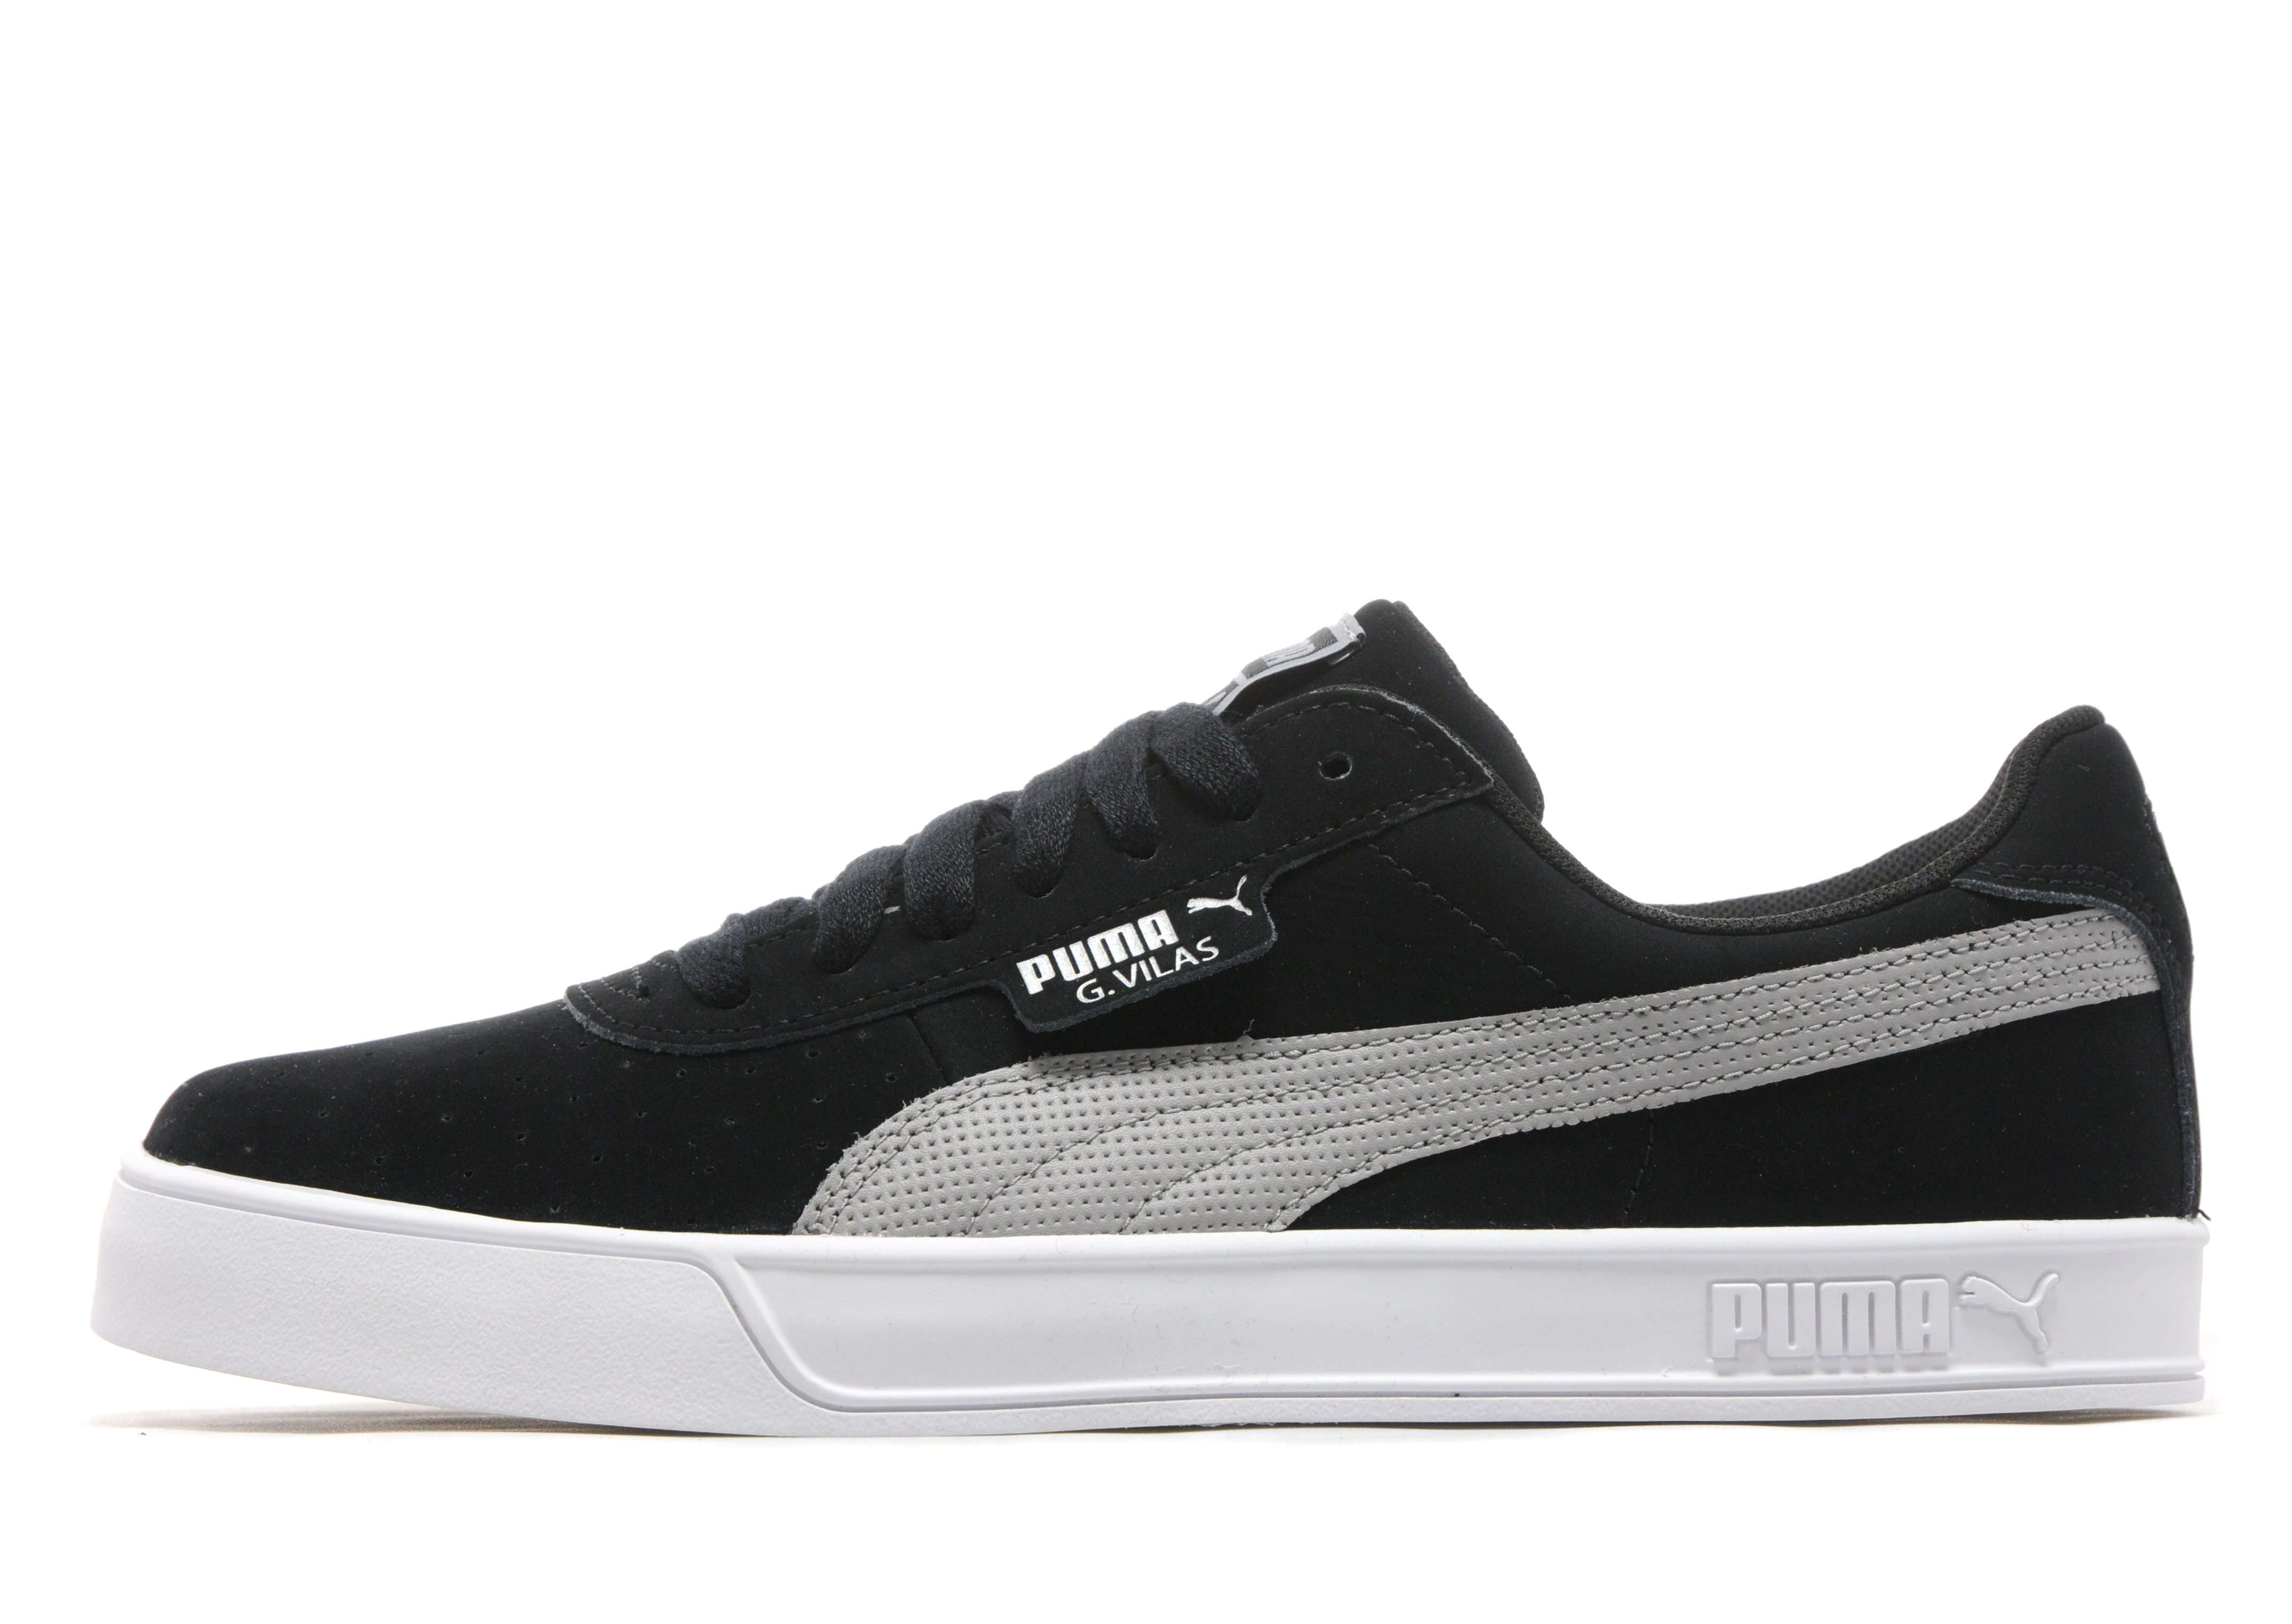 jd sports puma trainers